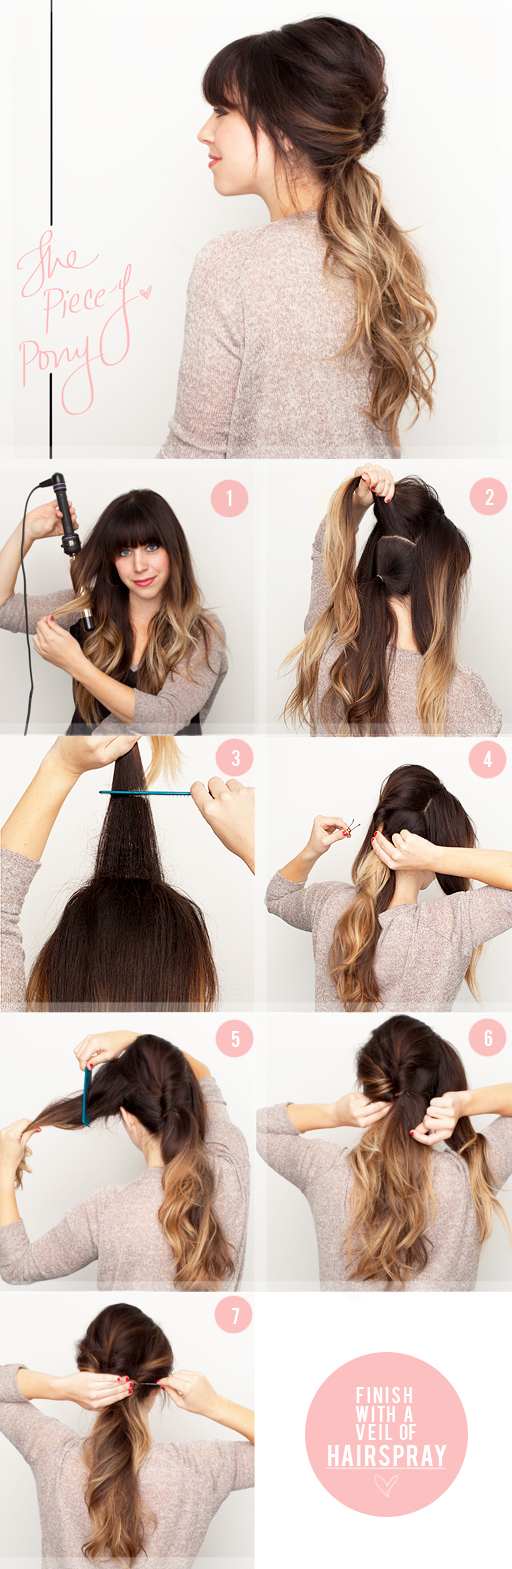 pony hair tutorial